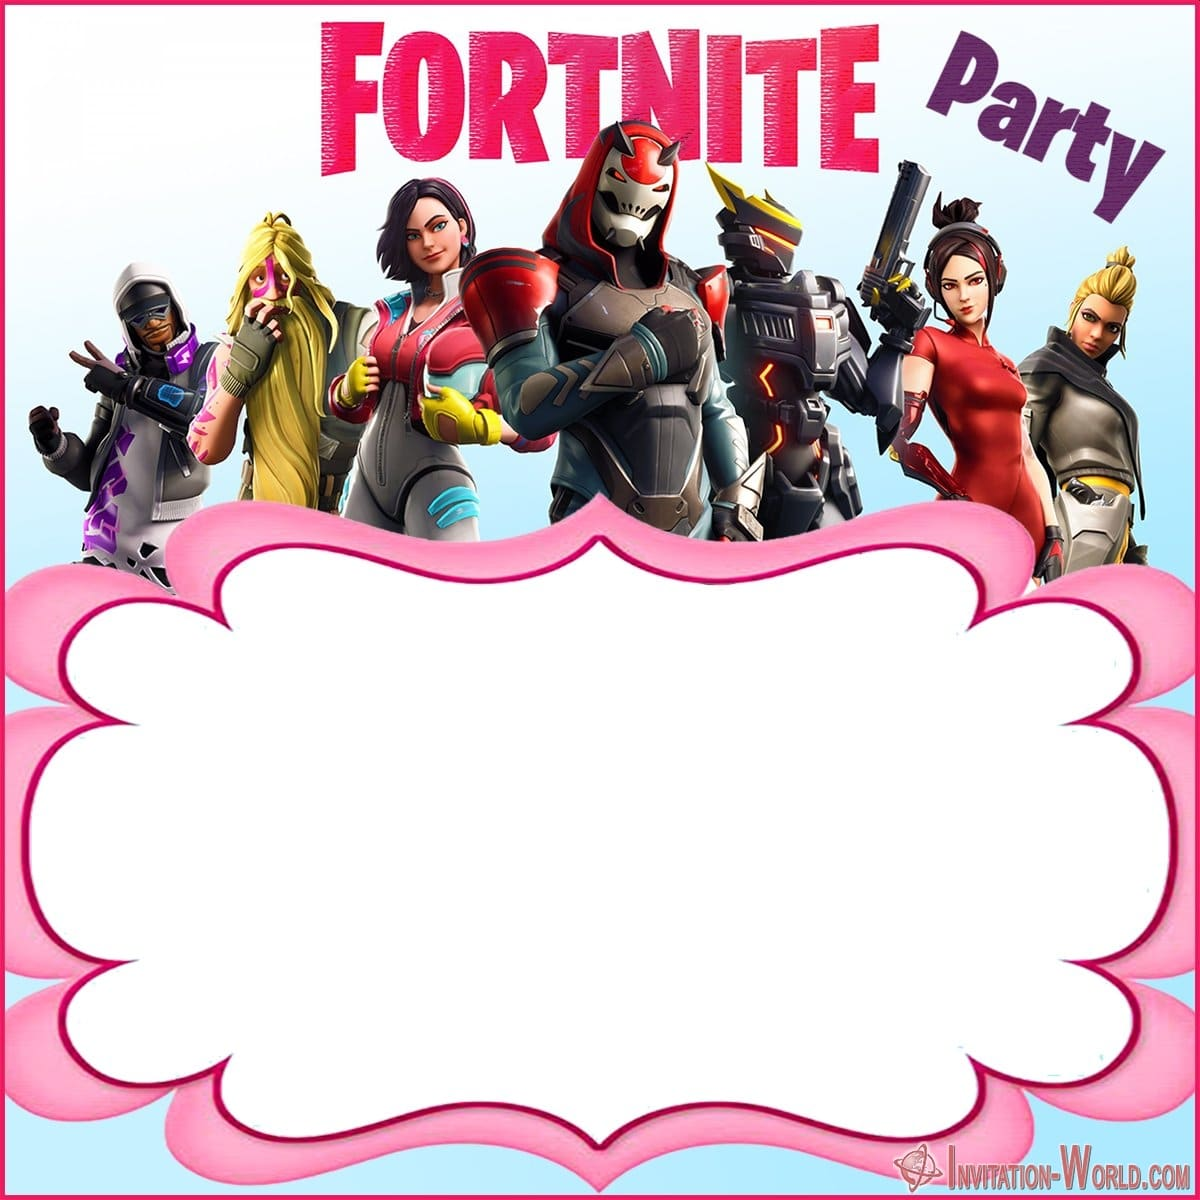 Free Printable Fortnite template - 8 Fortnite Invitation Templates for Epic Party